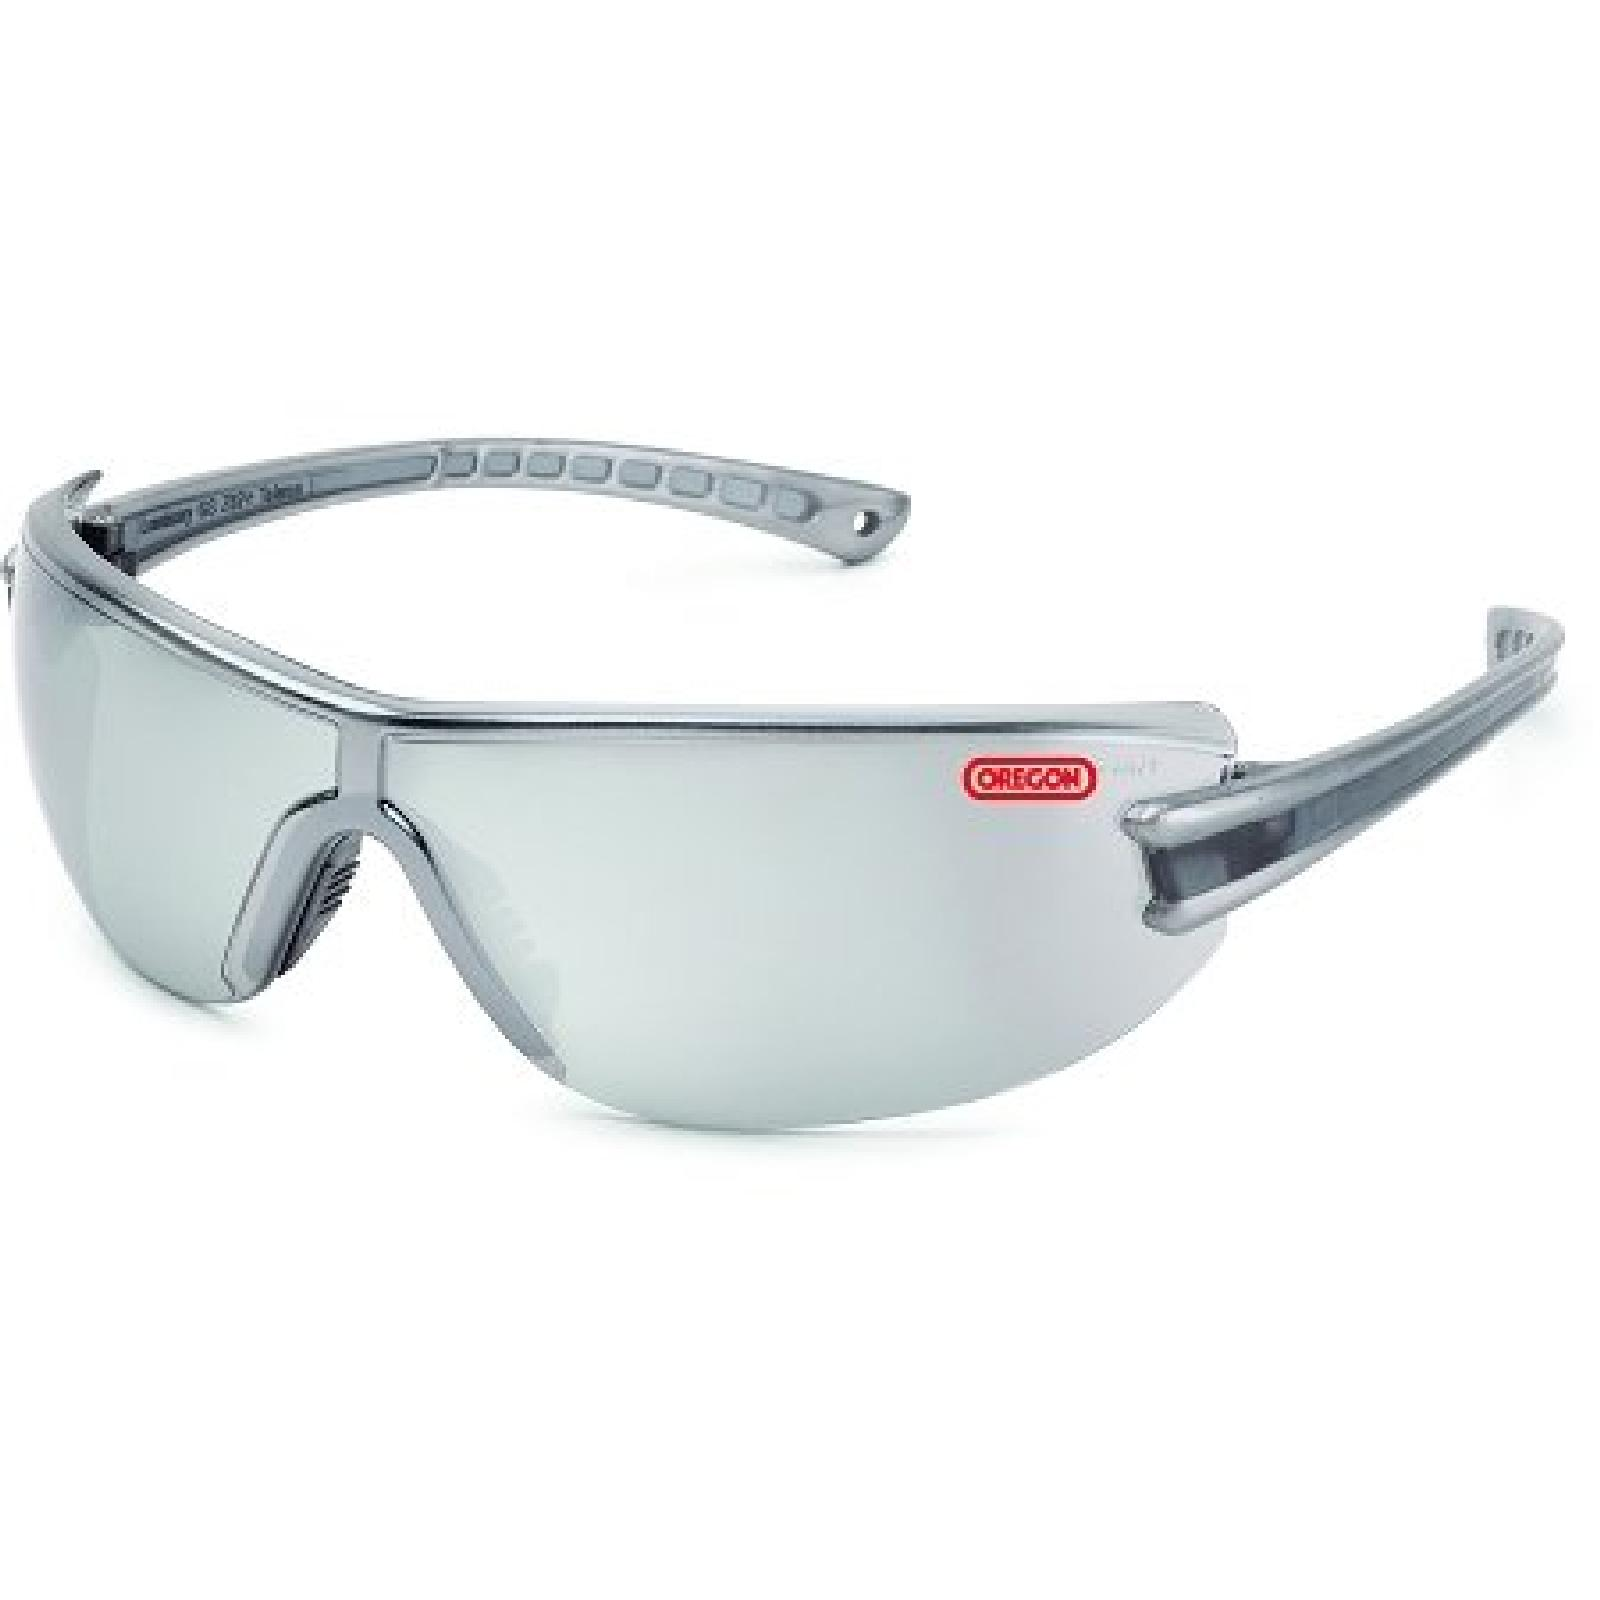 EYEWEAR SILVER W/SILVER[1 part# 42-146 by Oregon